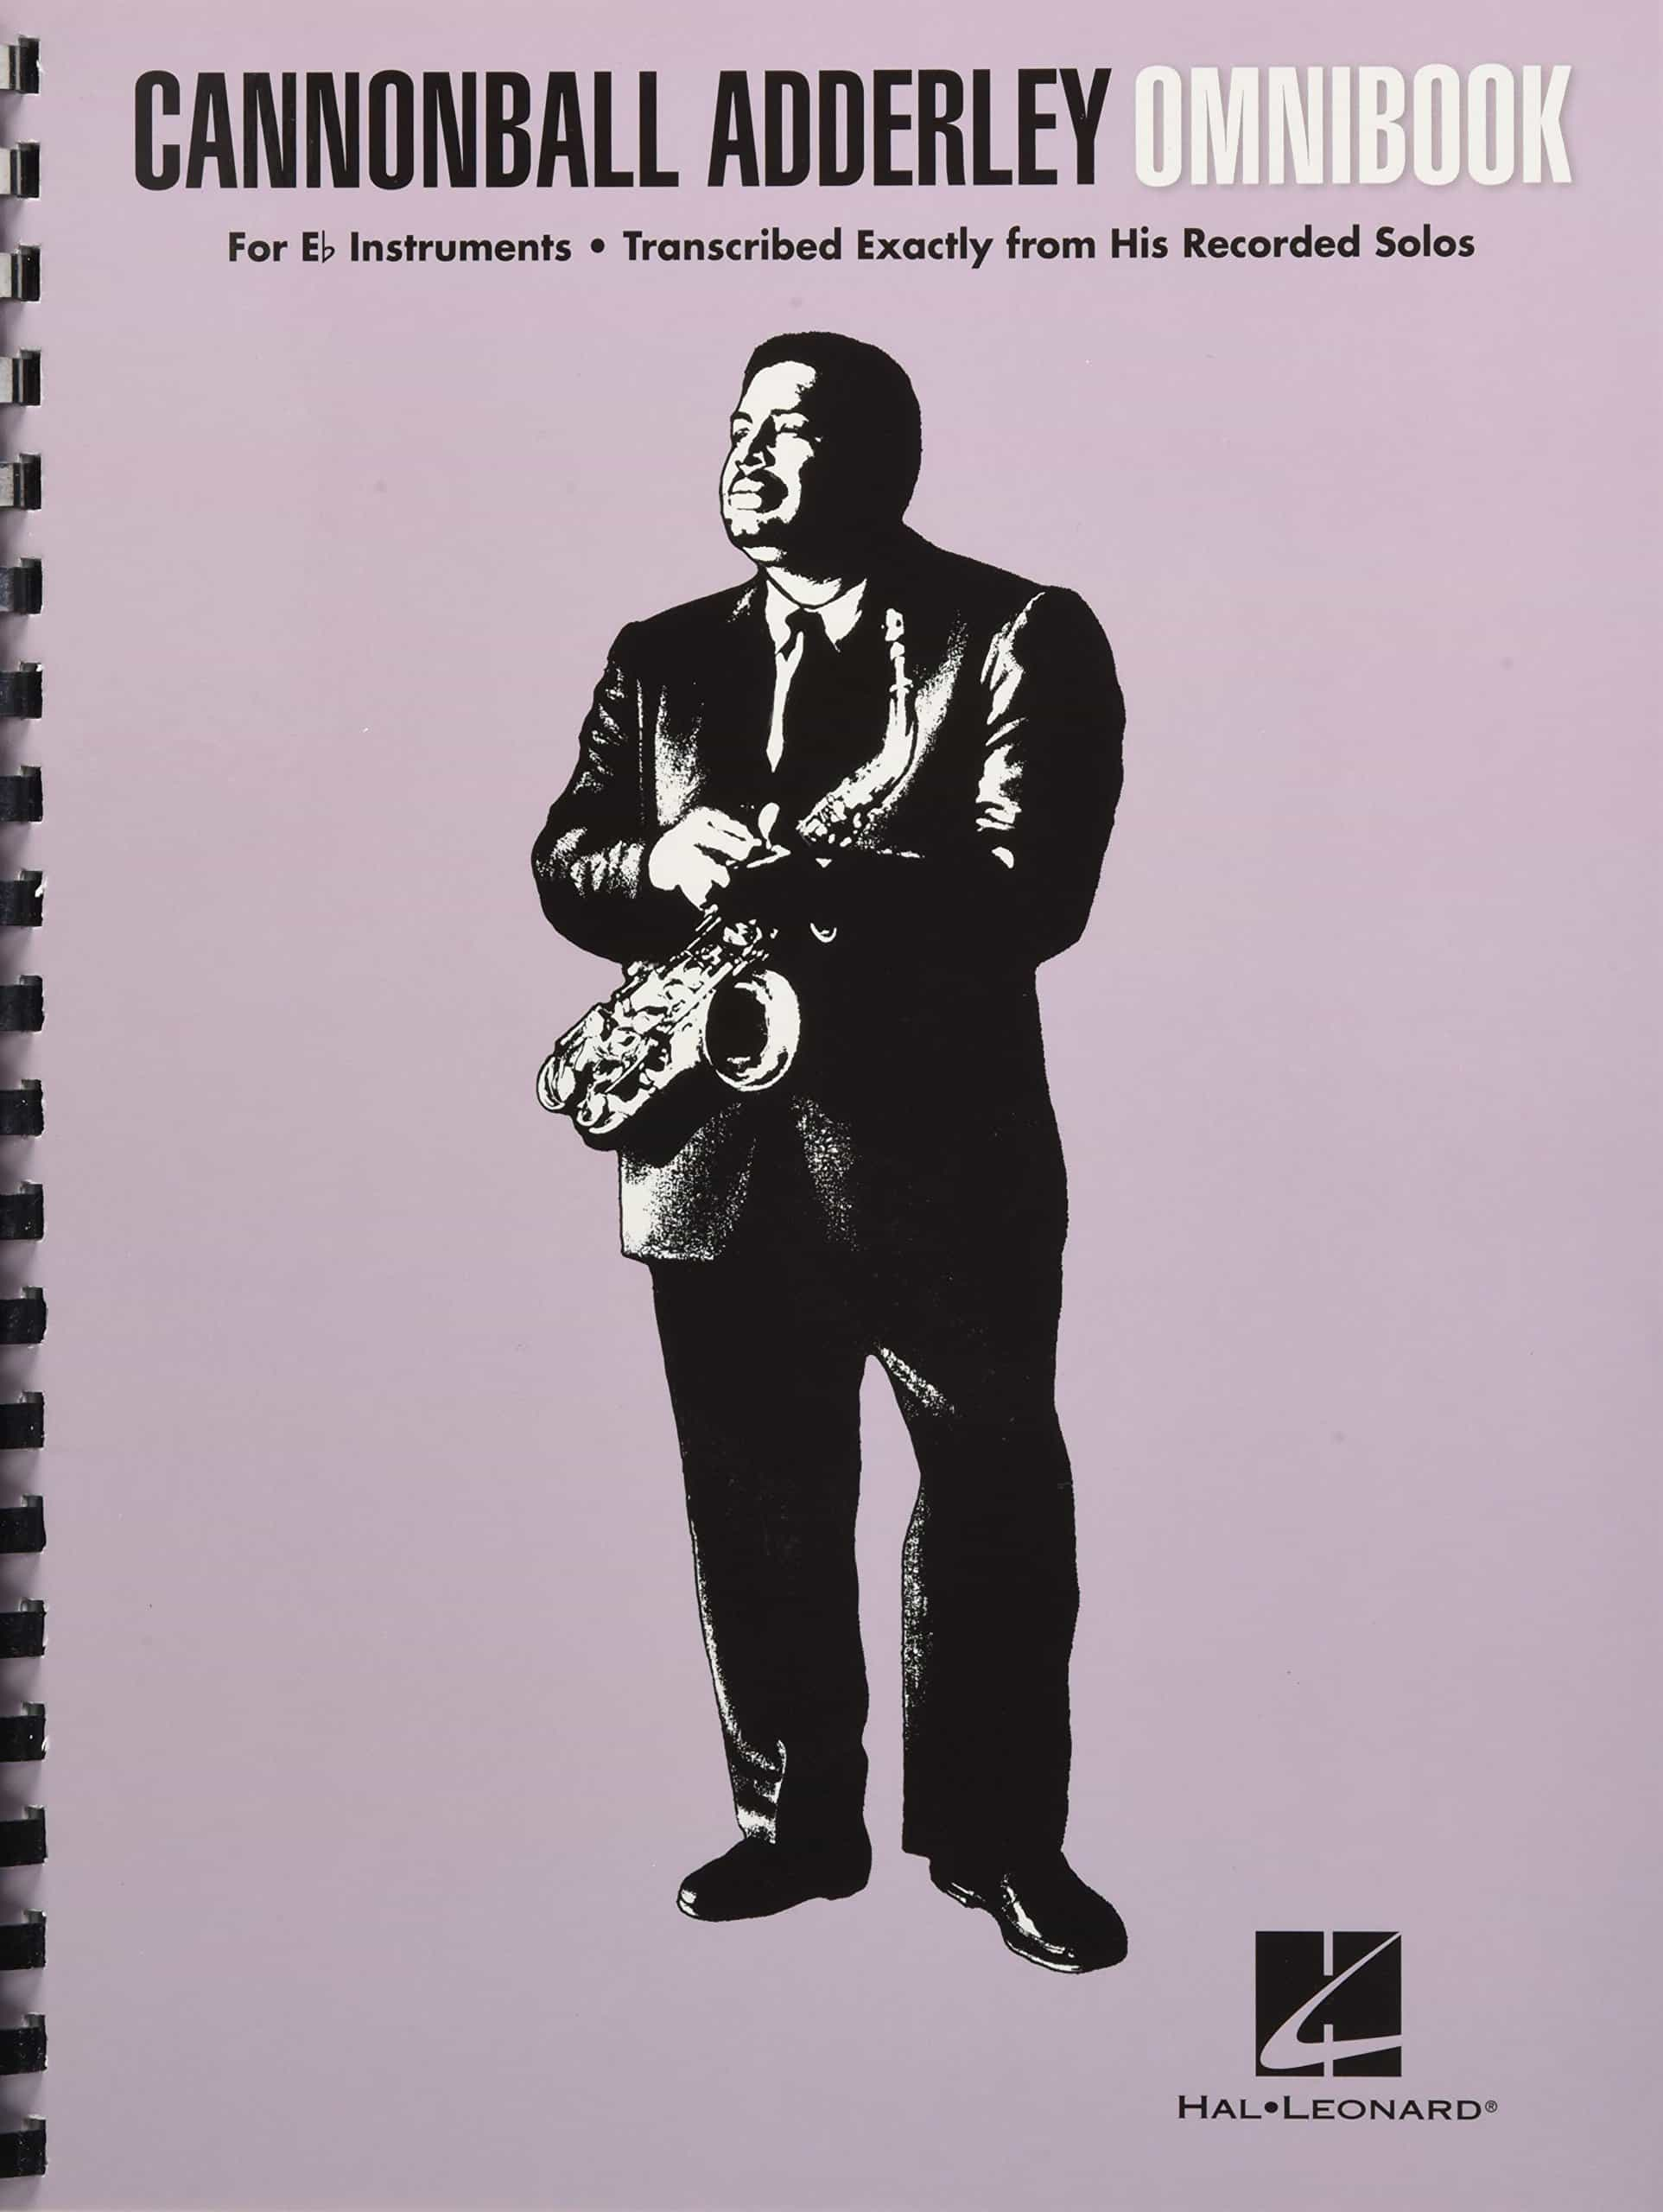 The Cannonball Adderley Omnibook Review